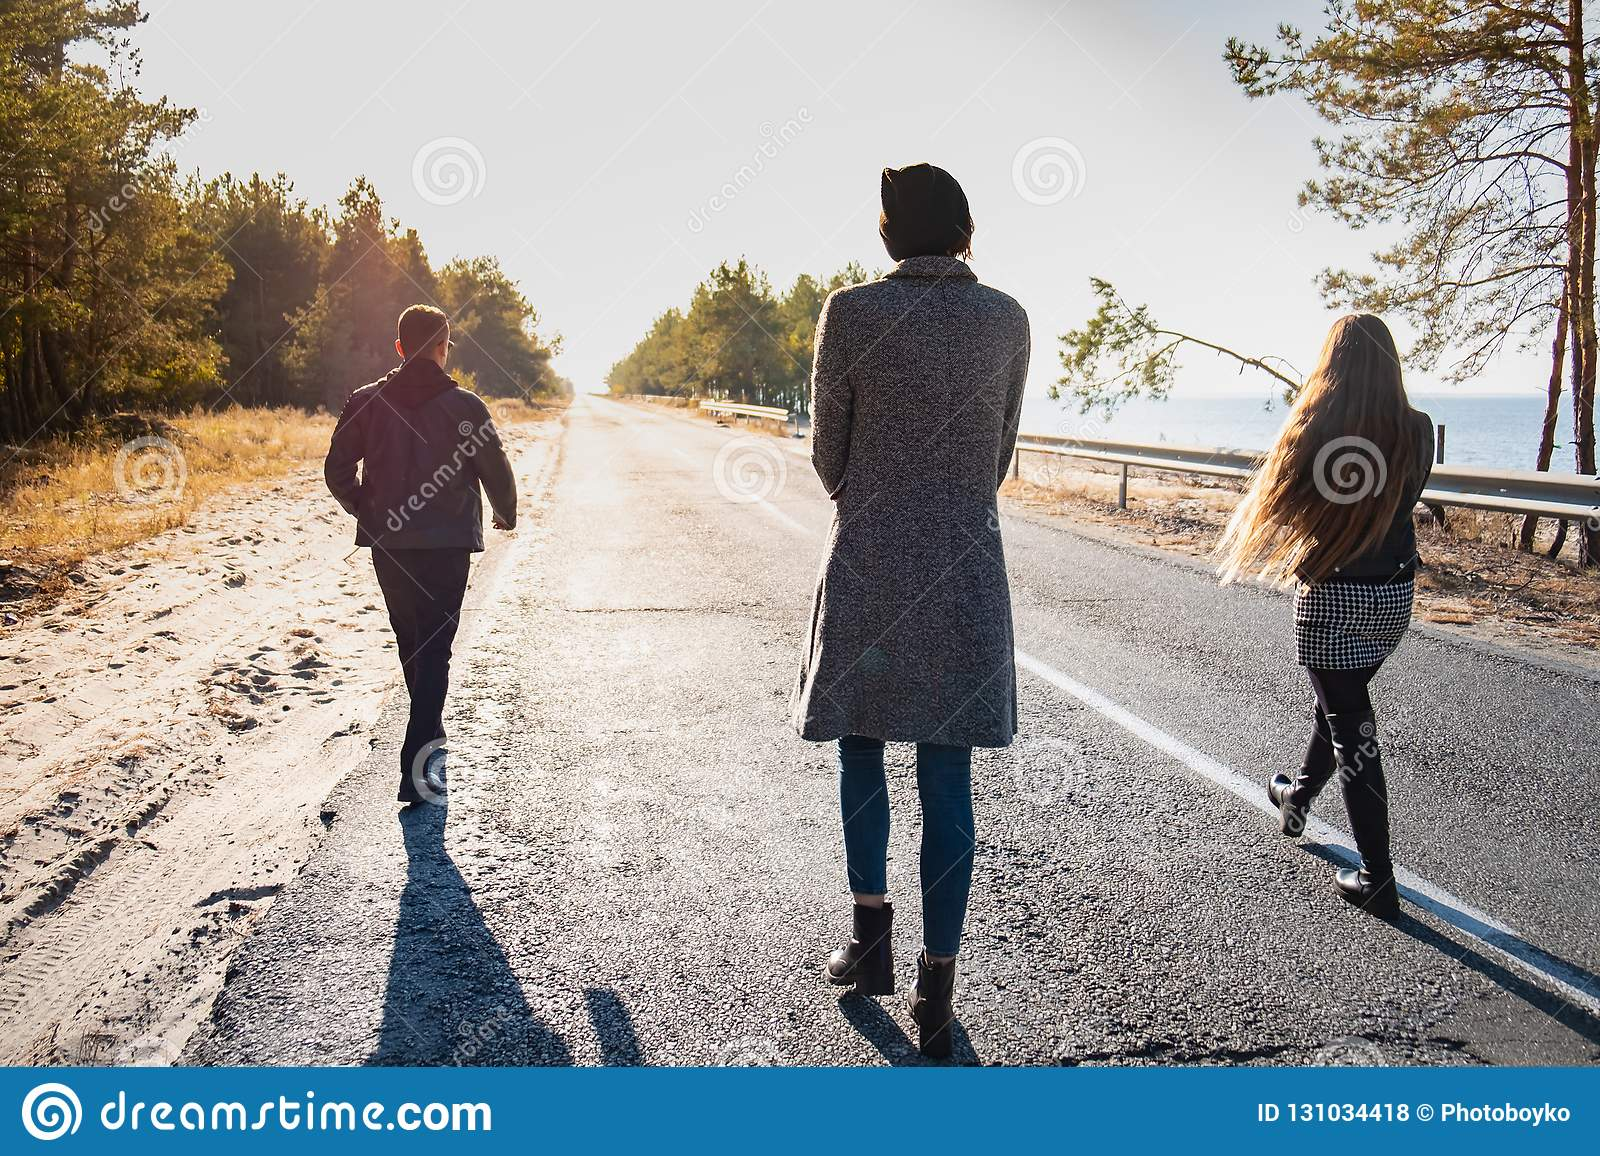 Group of people walk along the road at the seaside. Three young